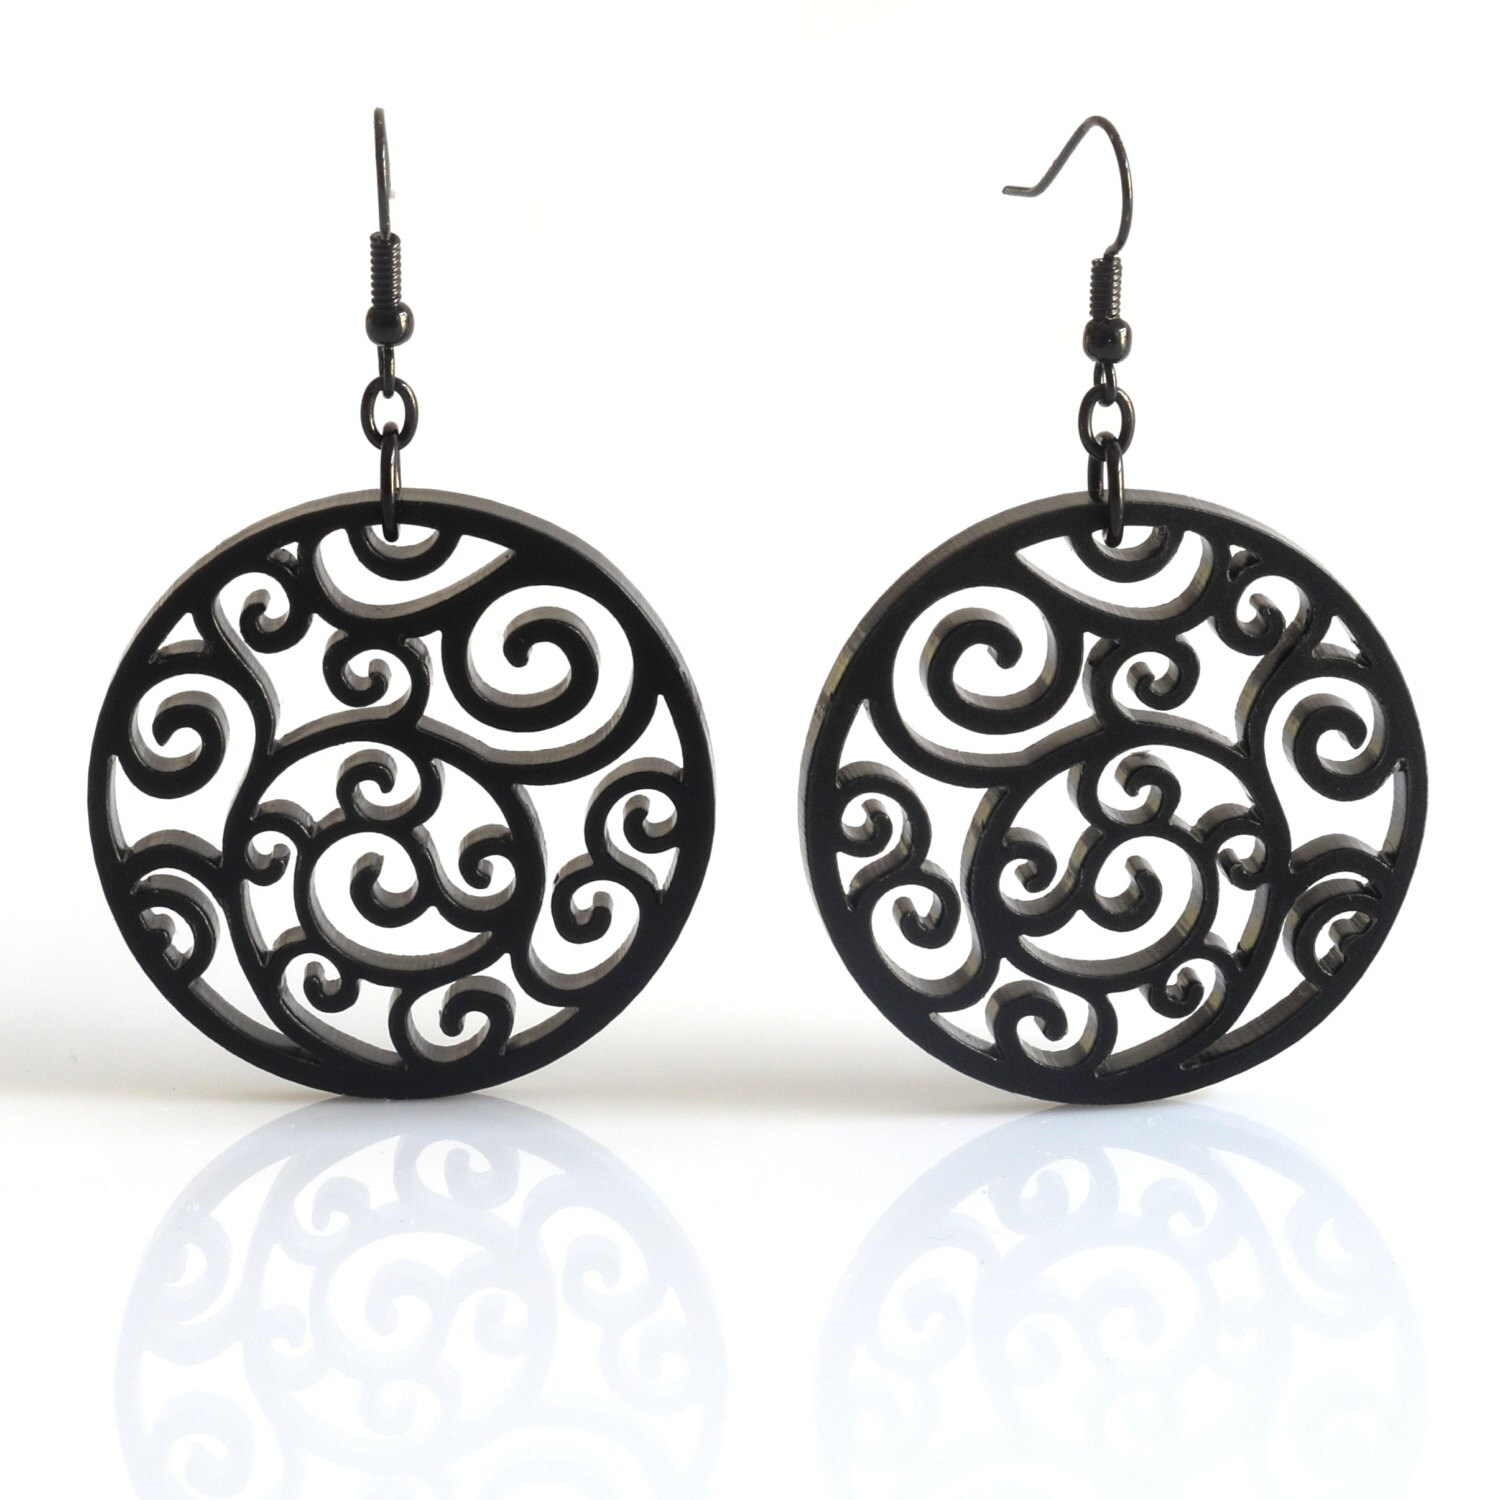 items similar to black lasercut acrylic earrings